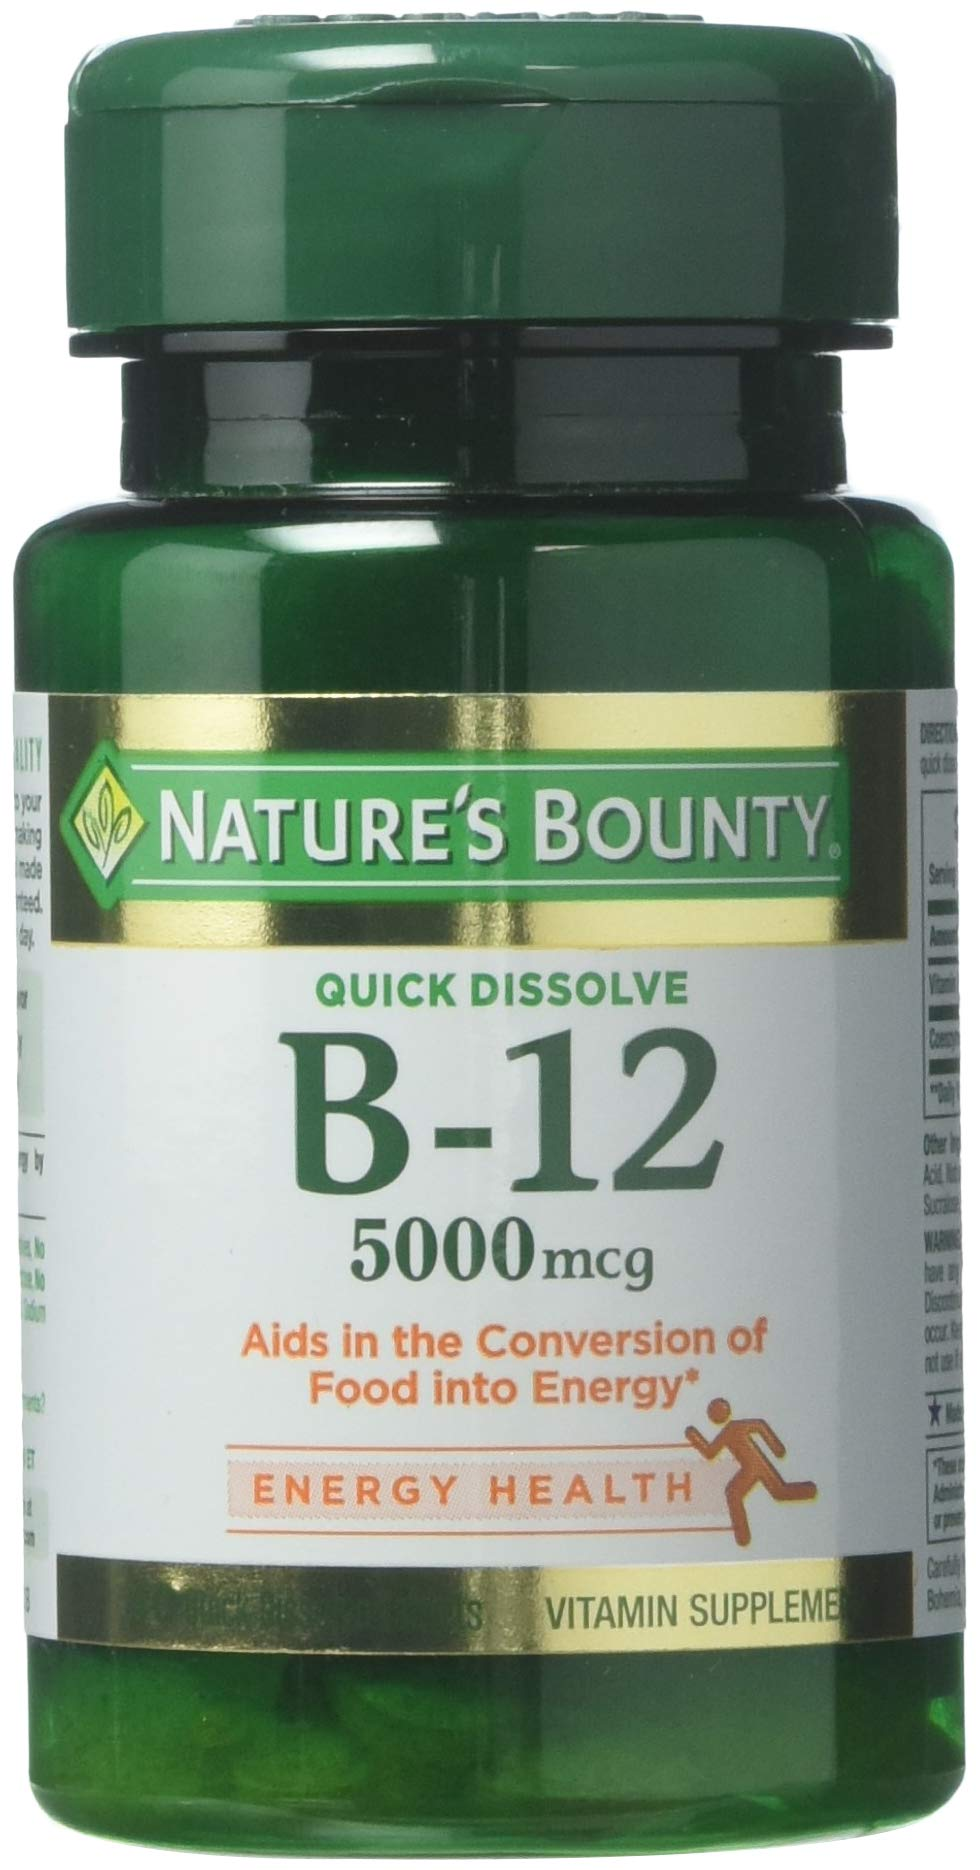 Nature's Bounty Vitamin B-12 5000 mcg, 40 Quick Dissolve Tablets (Pack of 3)